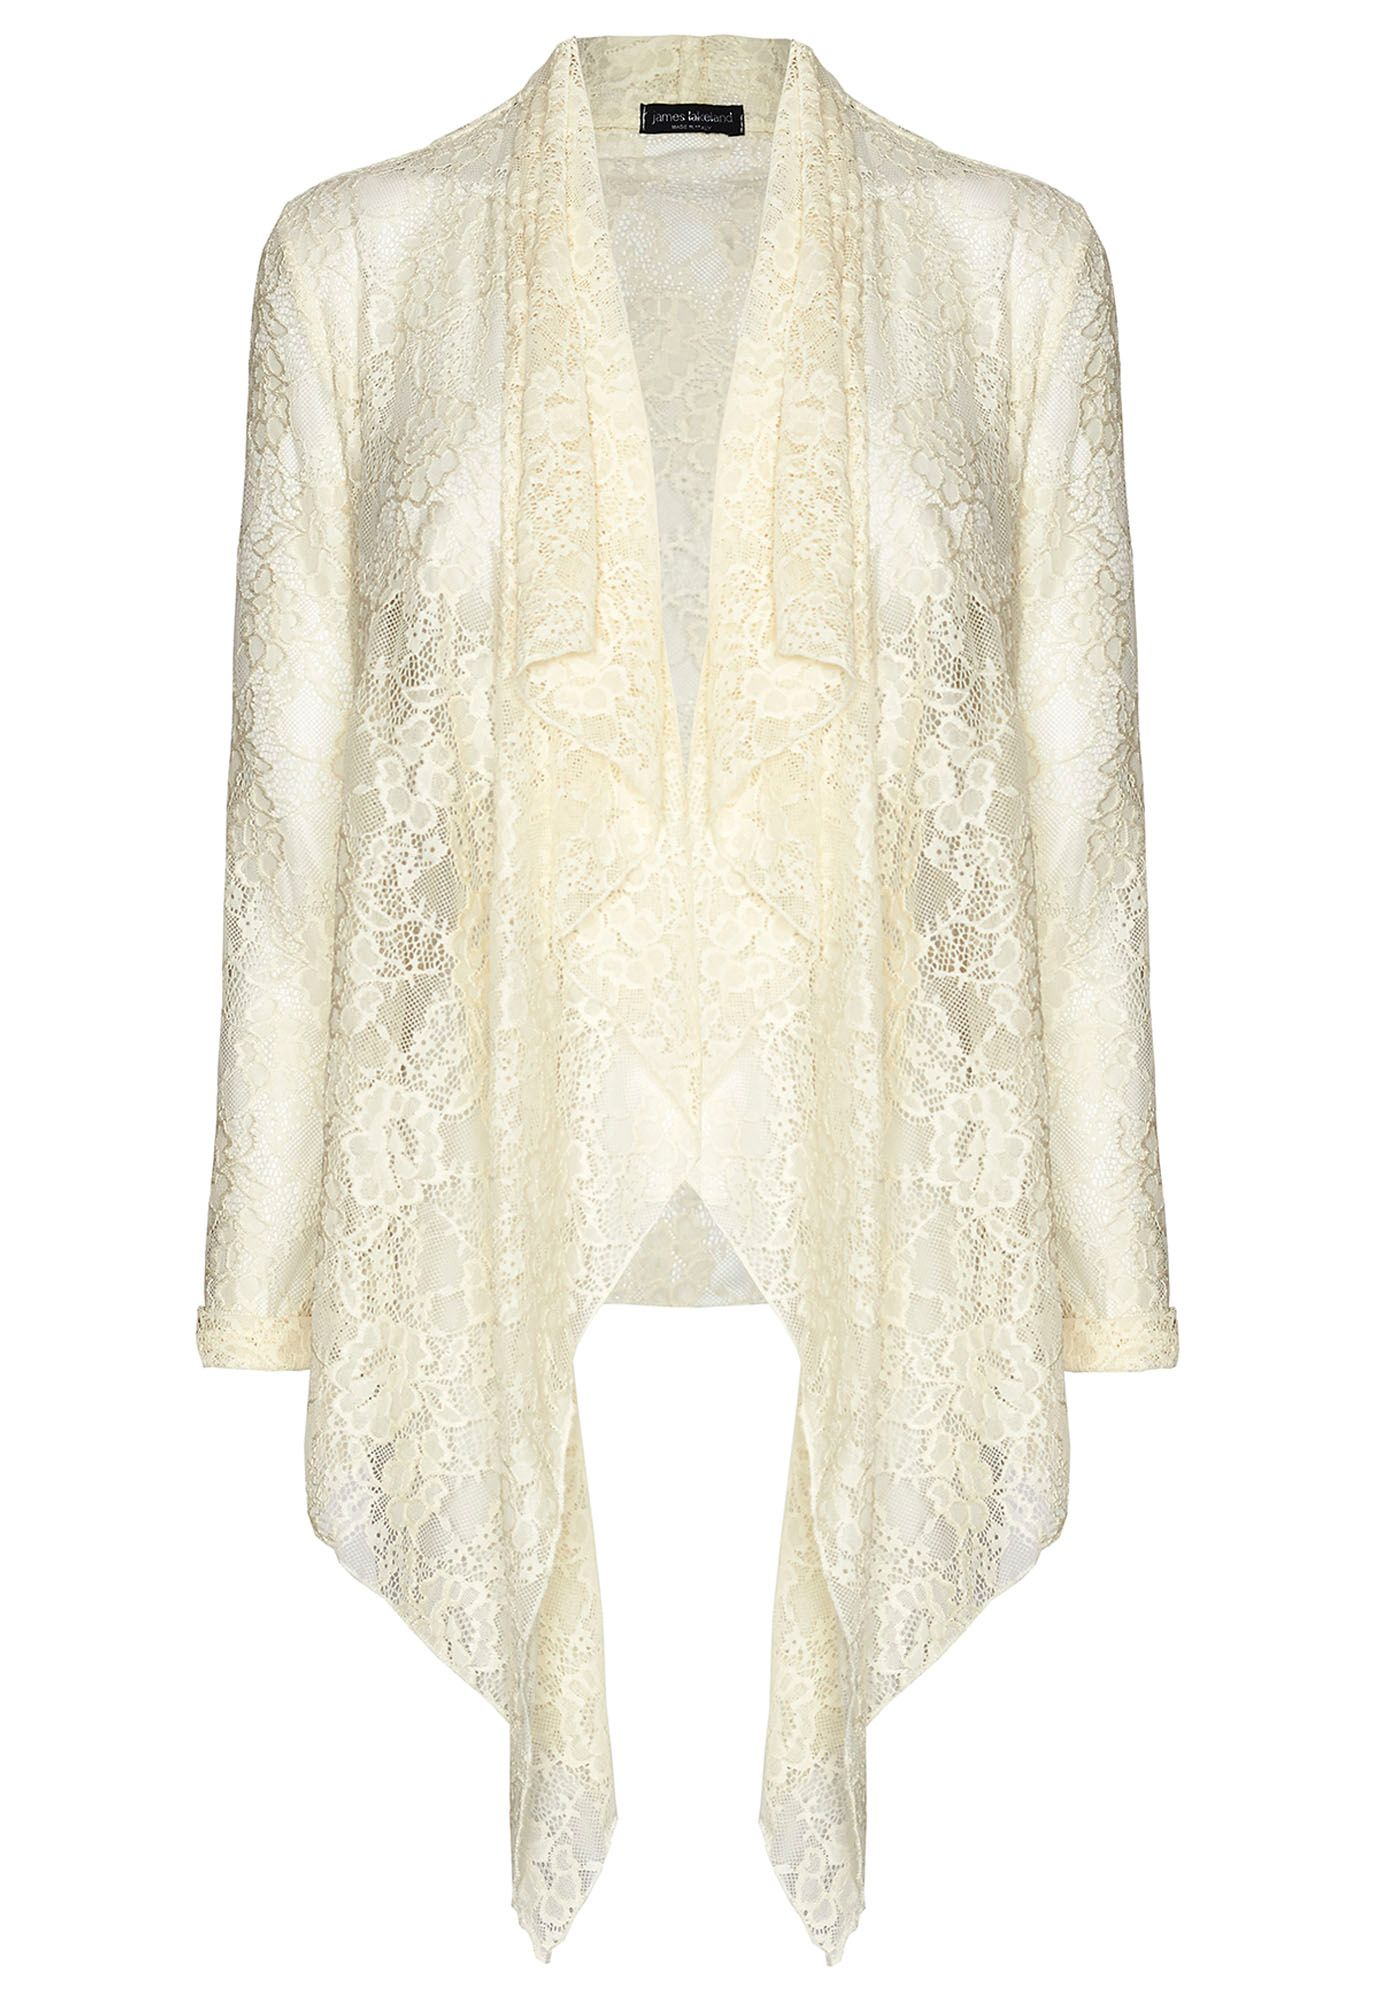 Find great deals on eBay for cream lace cardigan. Shop with confidence.